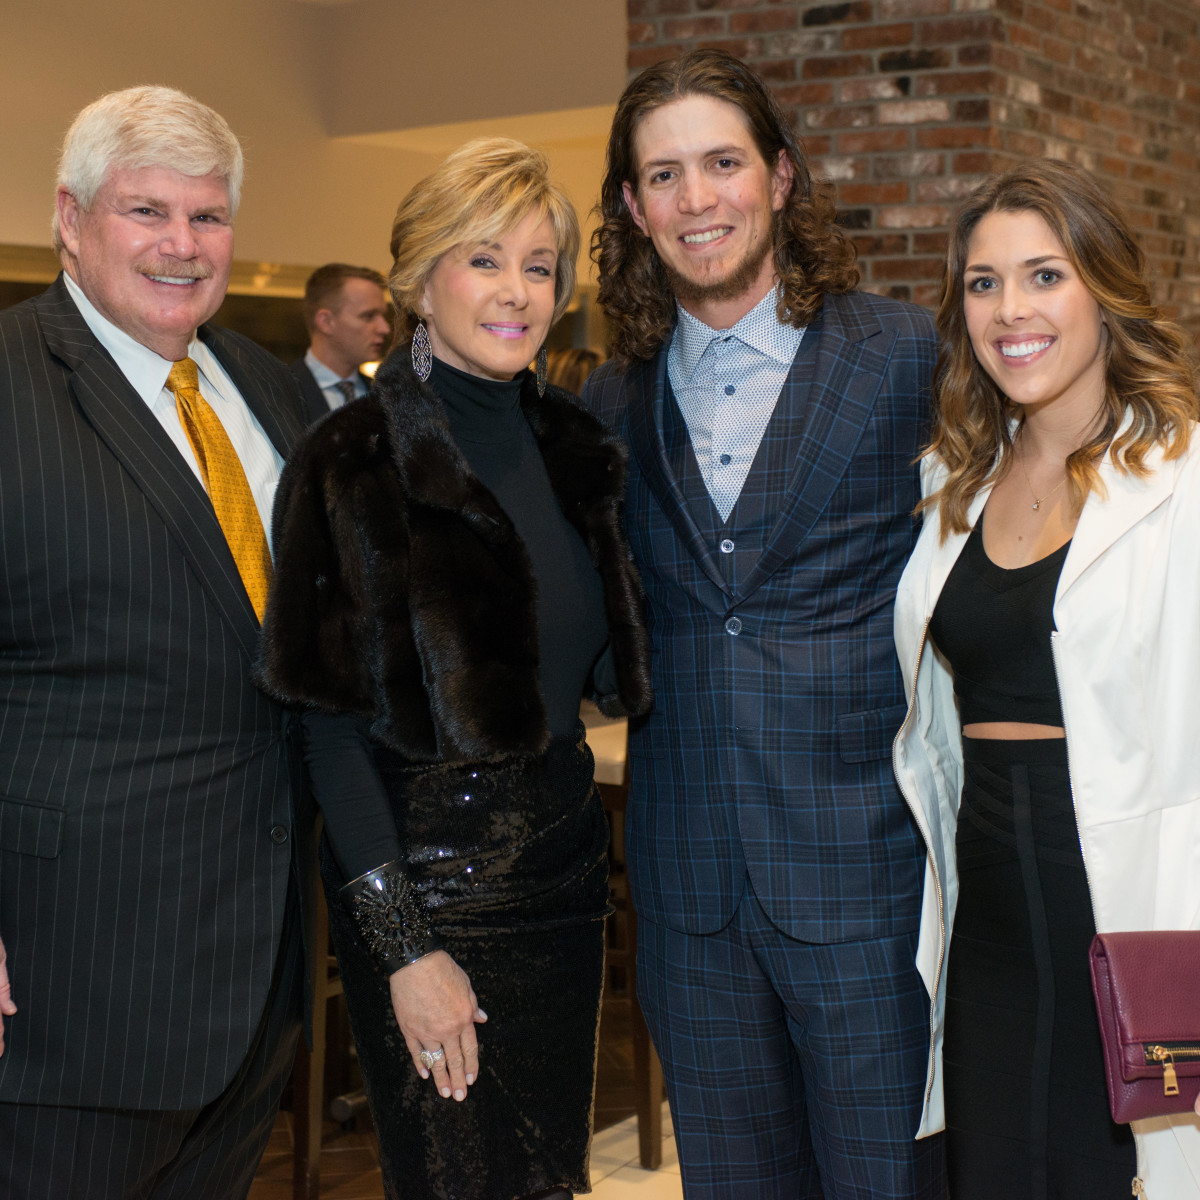 Astros Diamond Gala, Jan. 2016, John Eddie Williams, Sheridan Williams, Colby Rasmus, Megan Rasmus